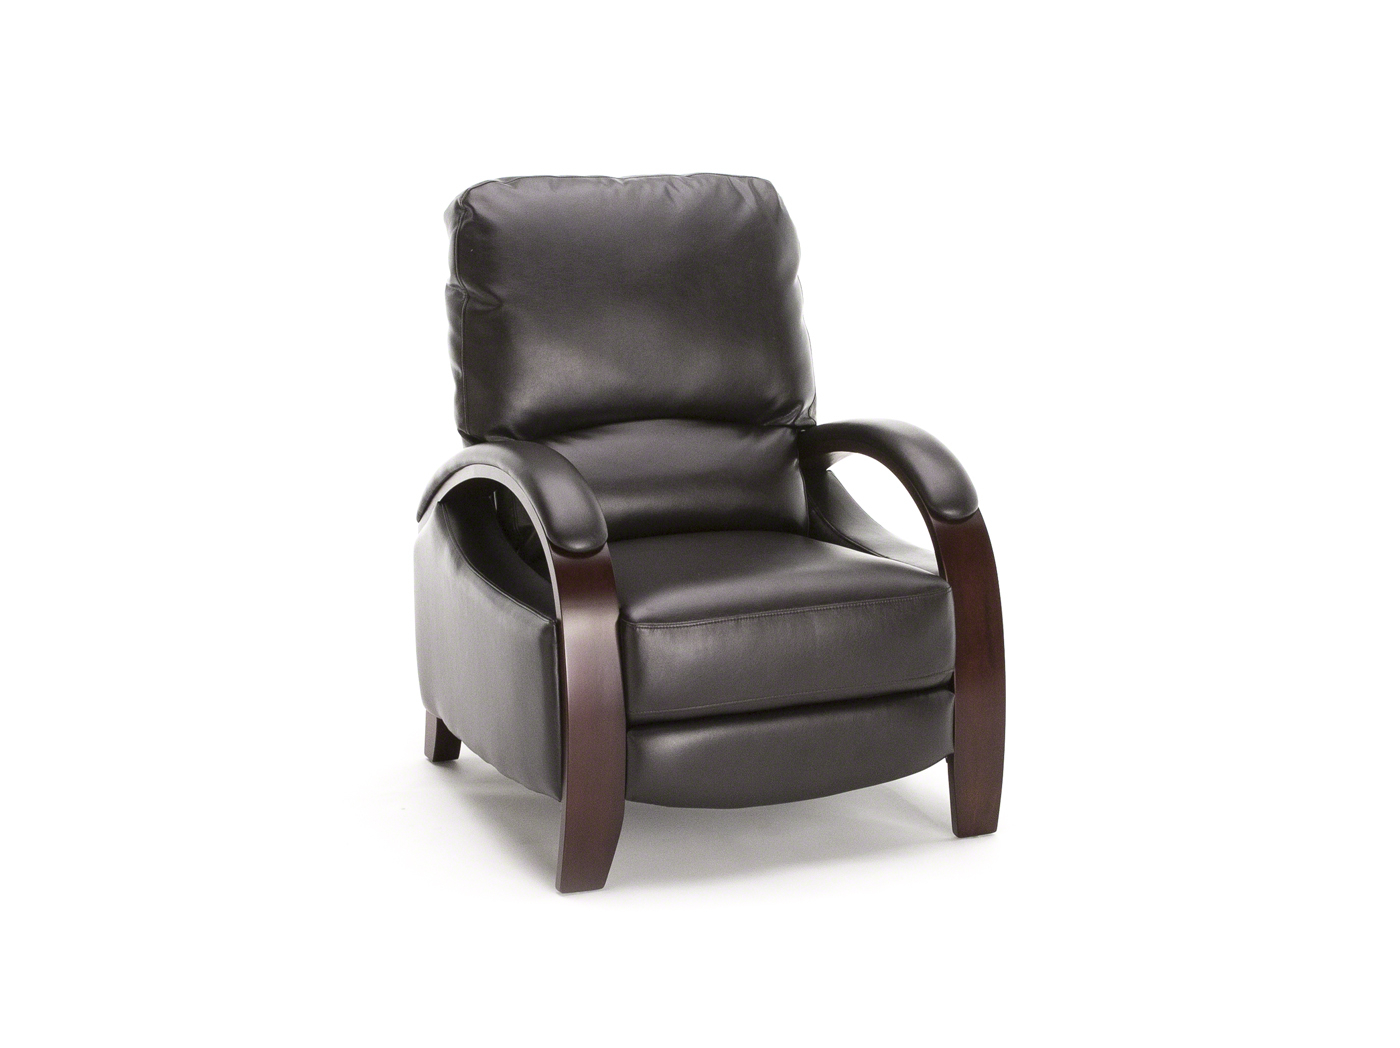 Living Room – Recliners | Steinhafels With Mari Swivel Glider Recliners (View 7 of 25)